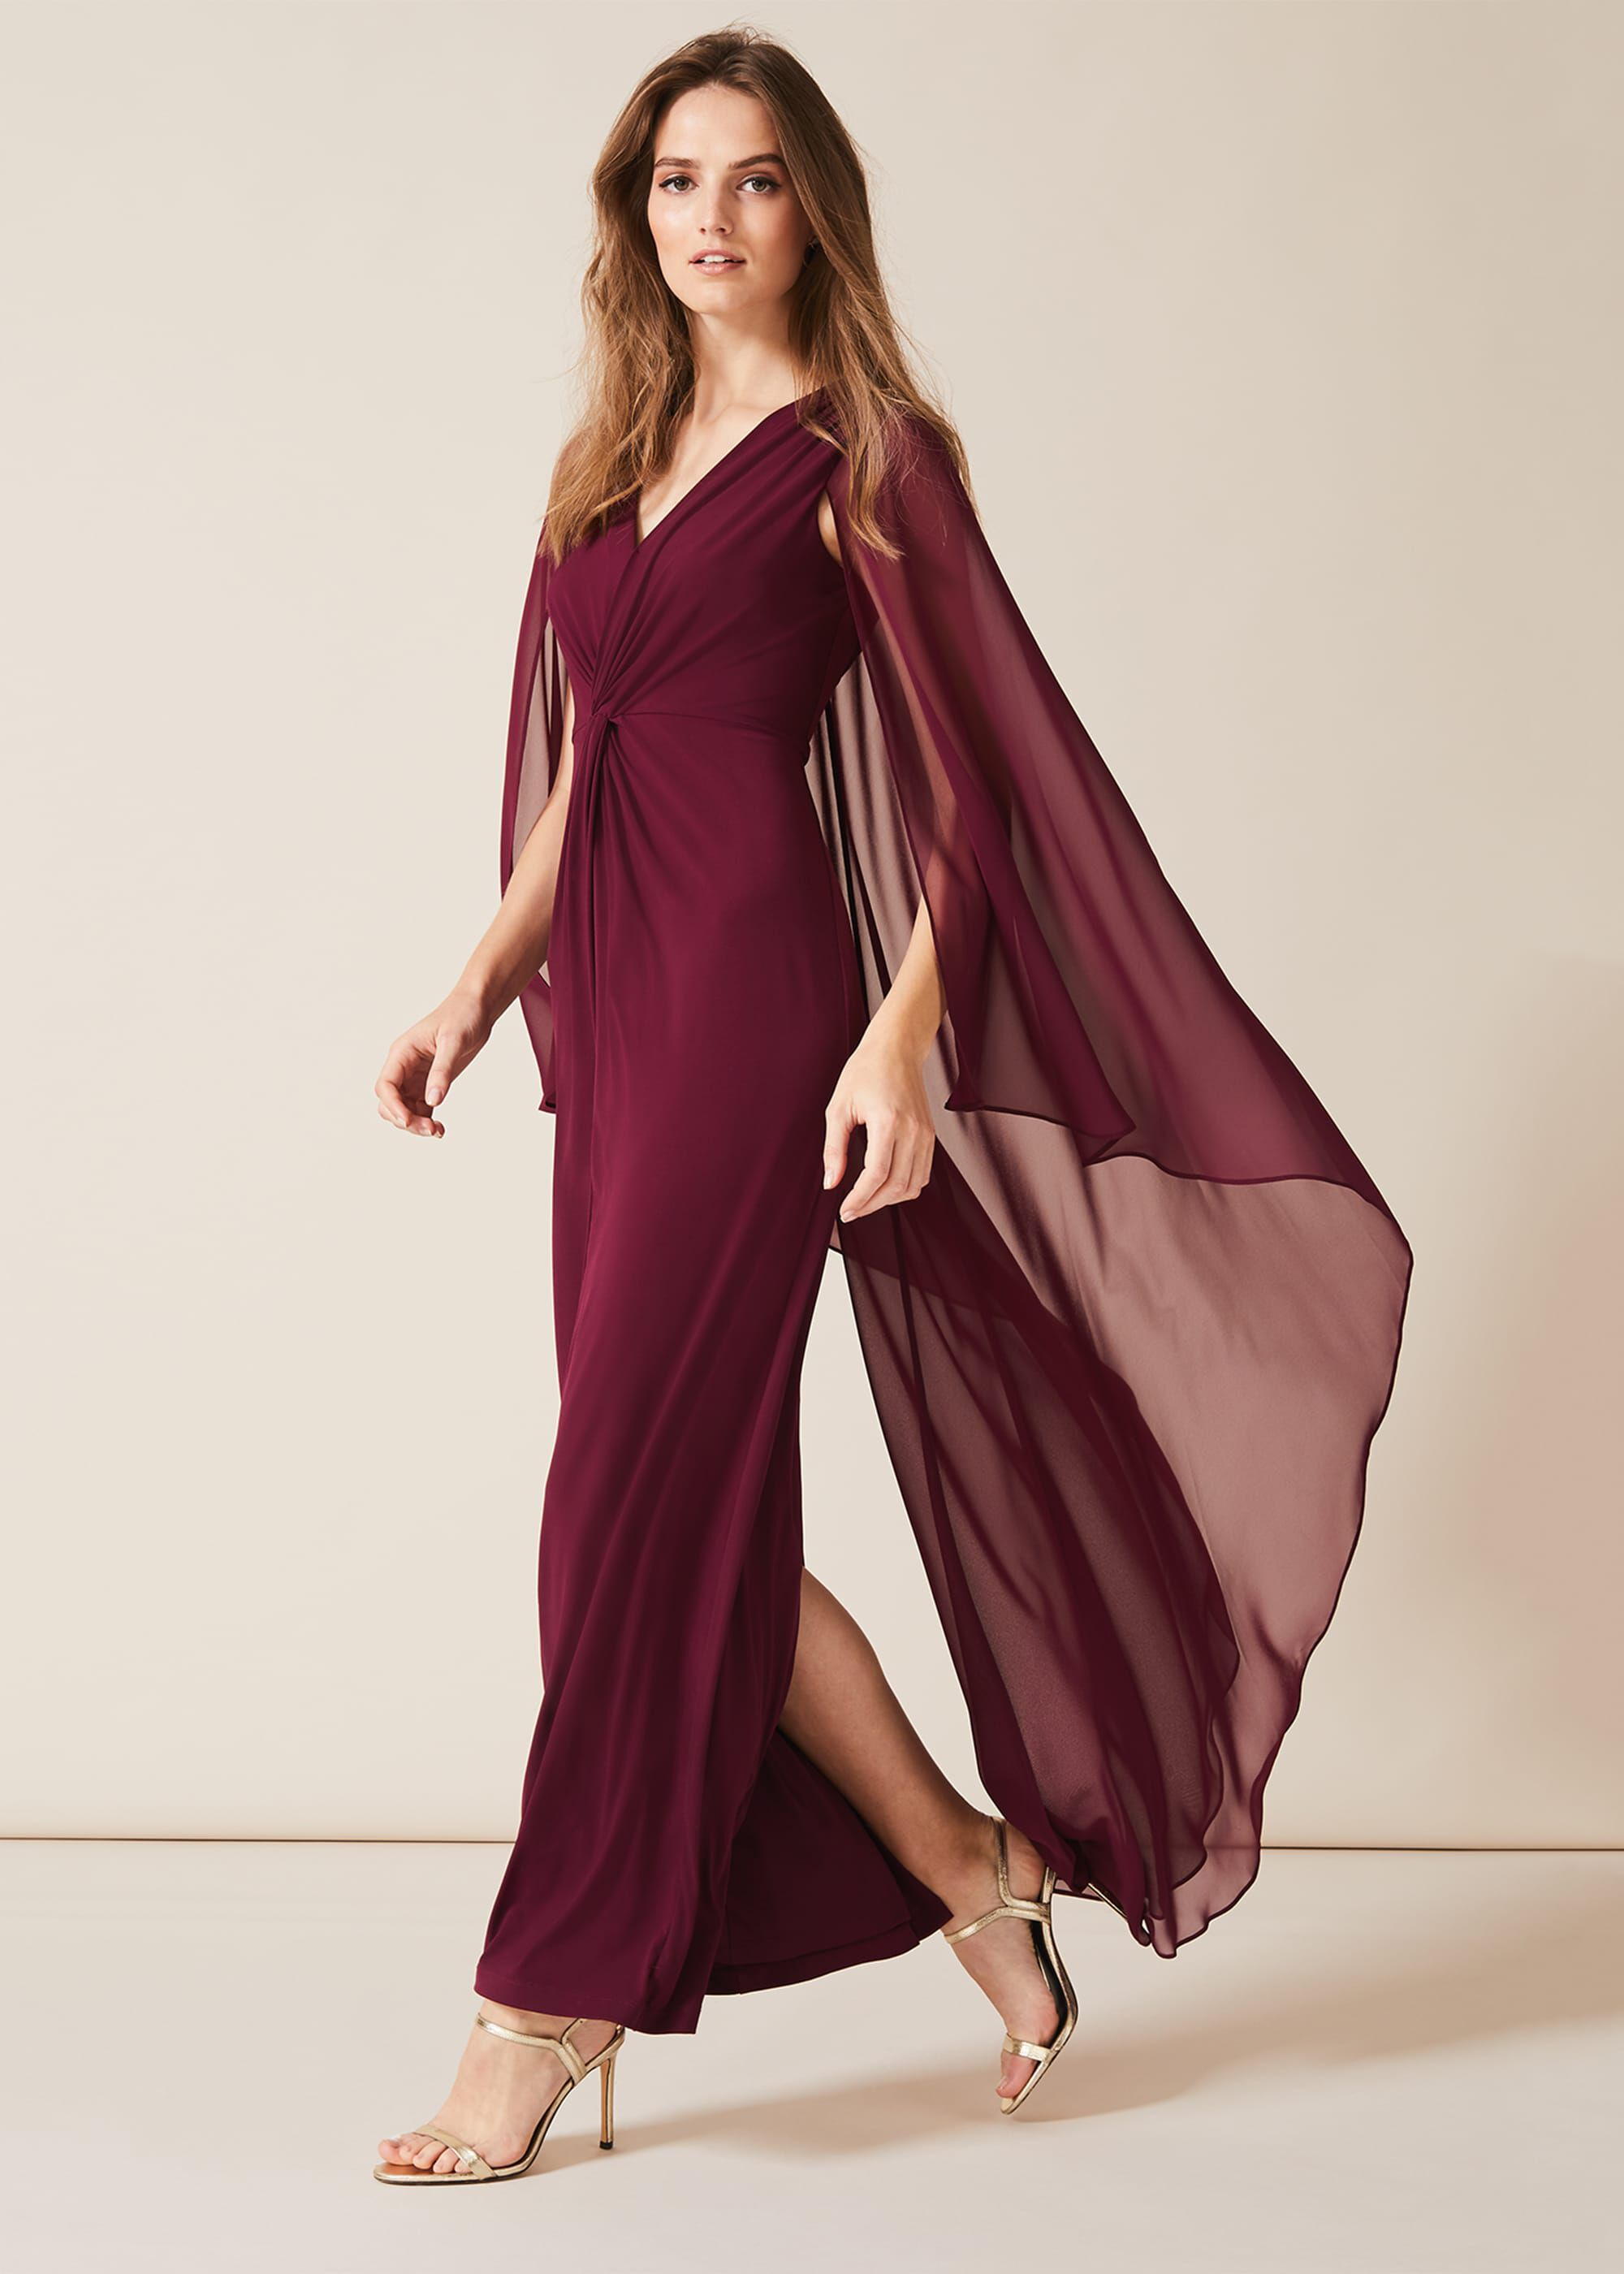 Phase Eight Edna Cape Maxi Dress, Red, Maxi, Occasion Dress